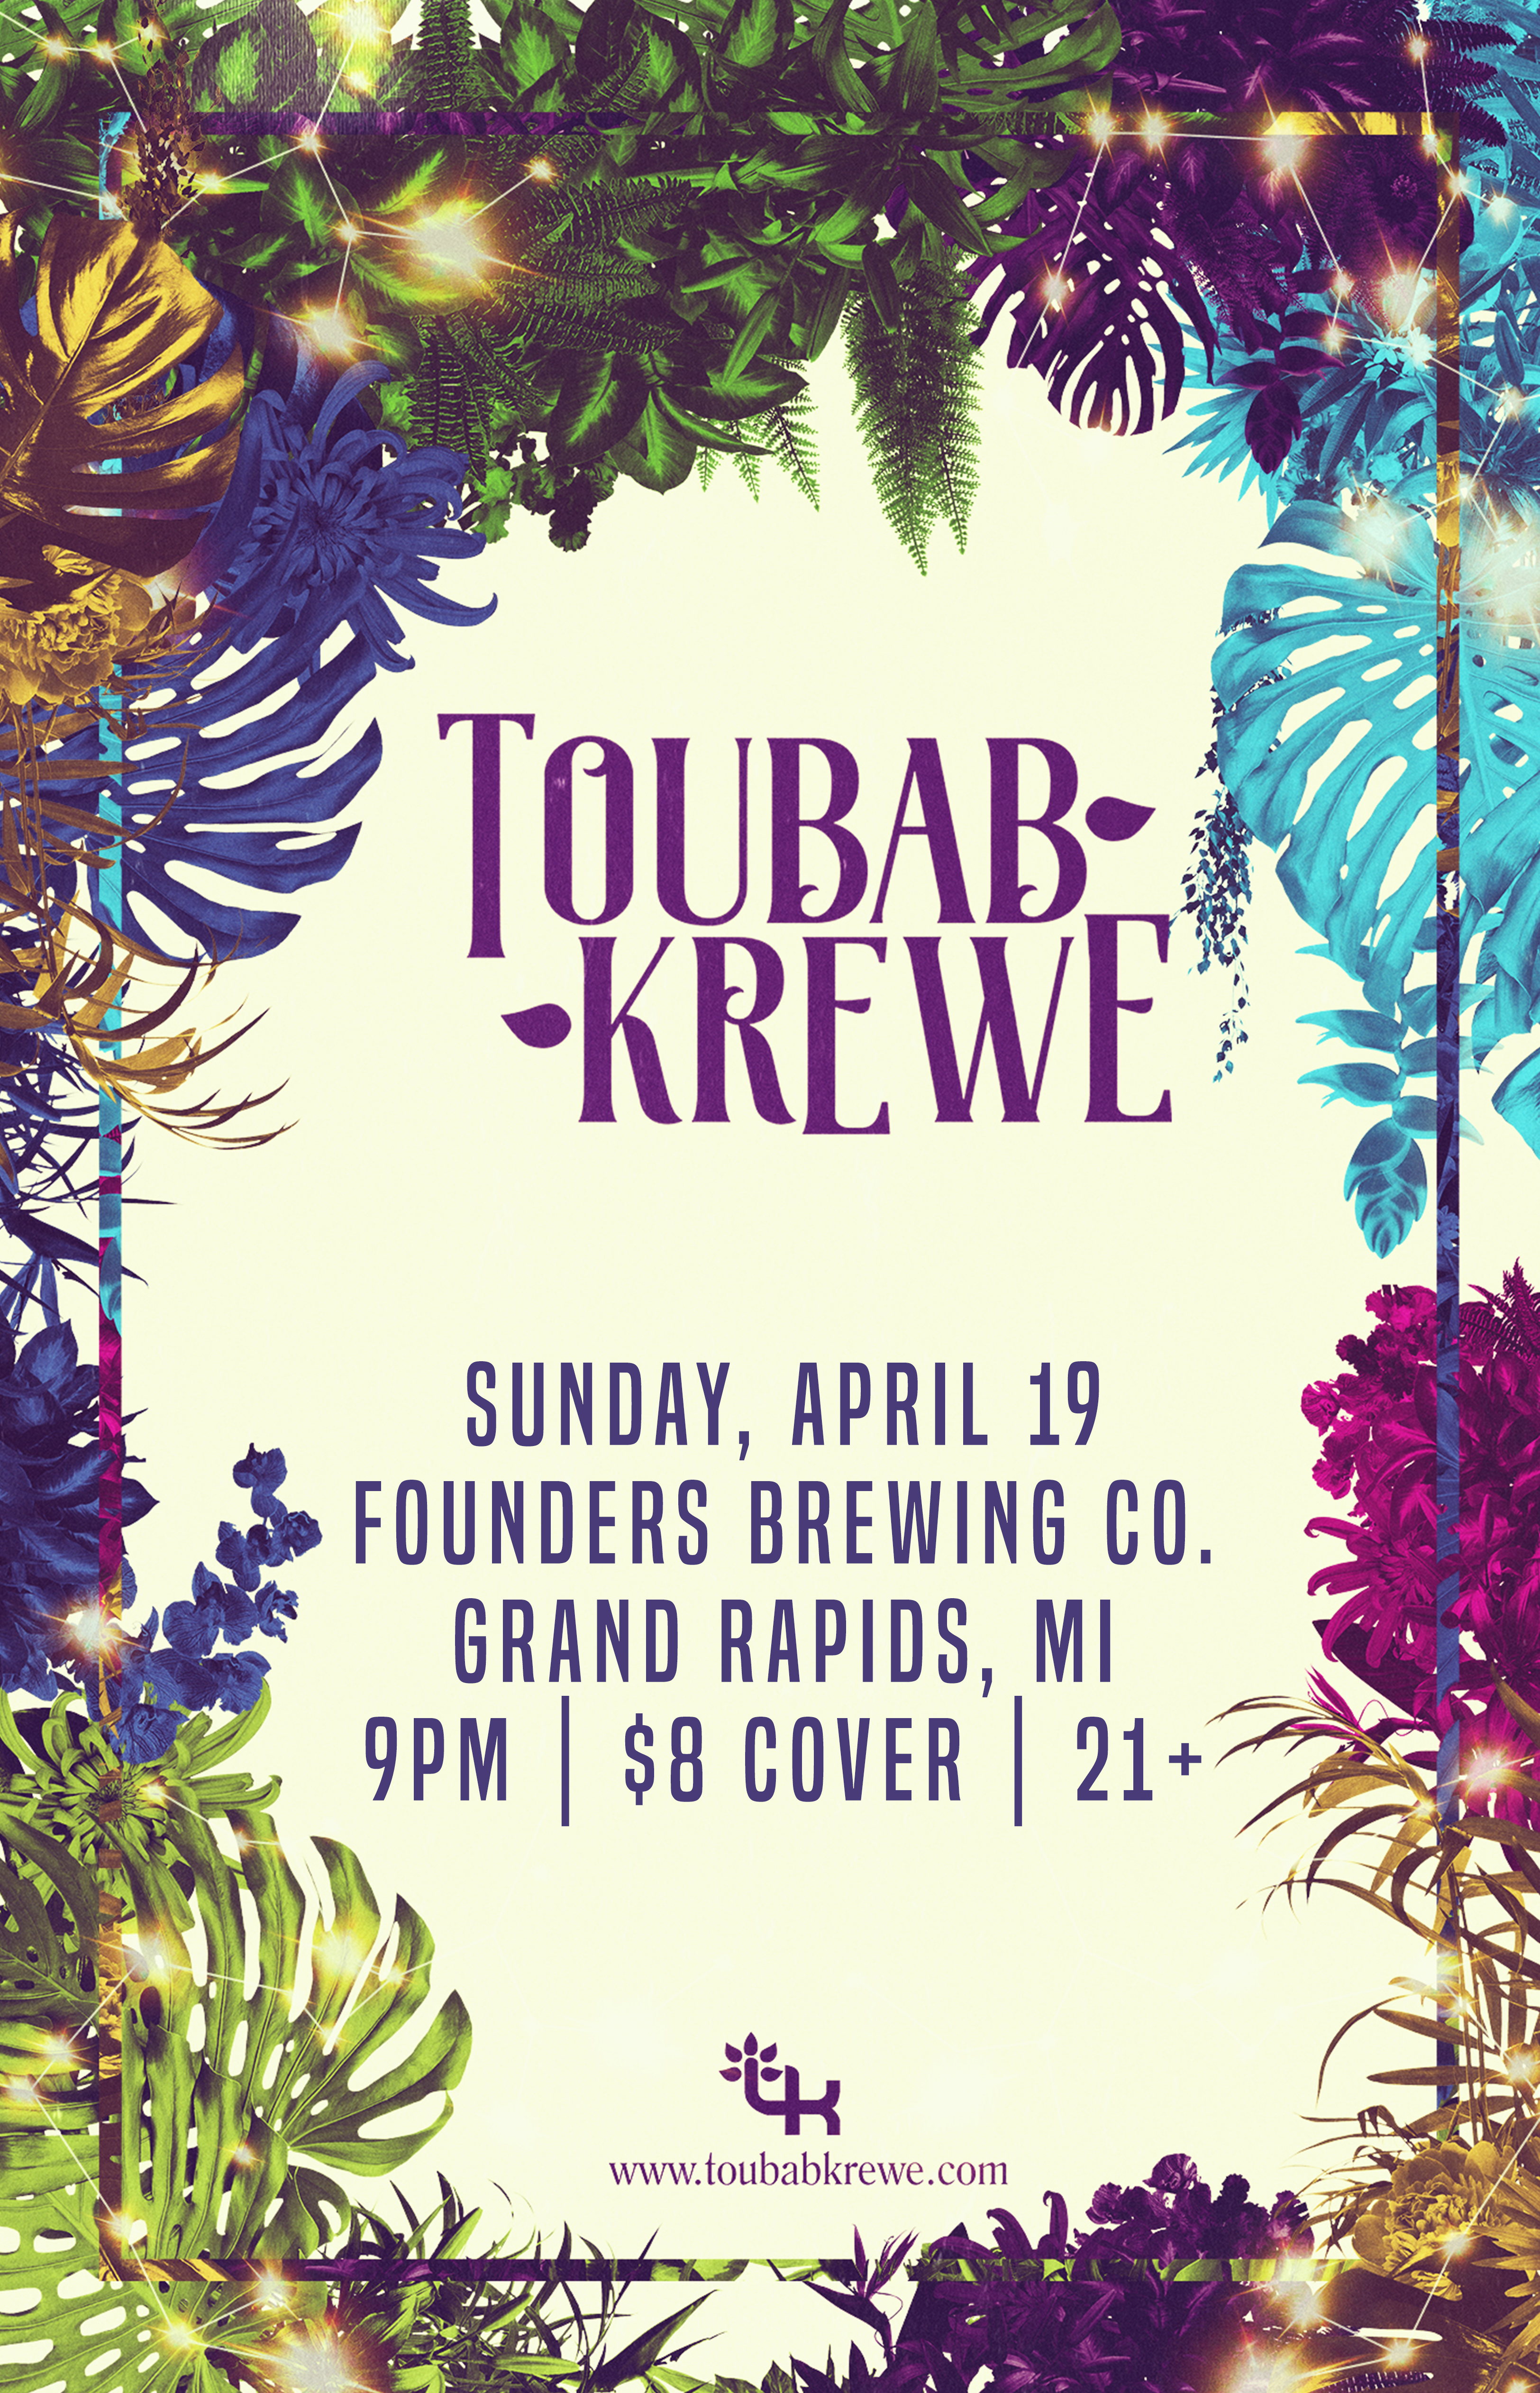 Toubab Krewe event poster hosted by Founders Brewing Co.